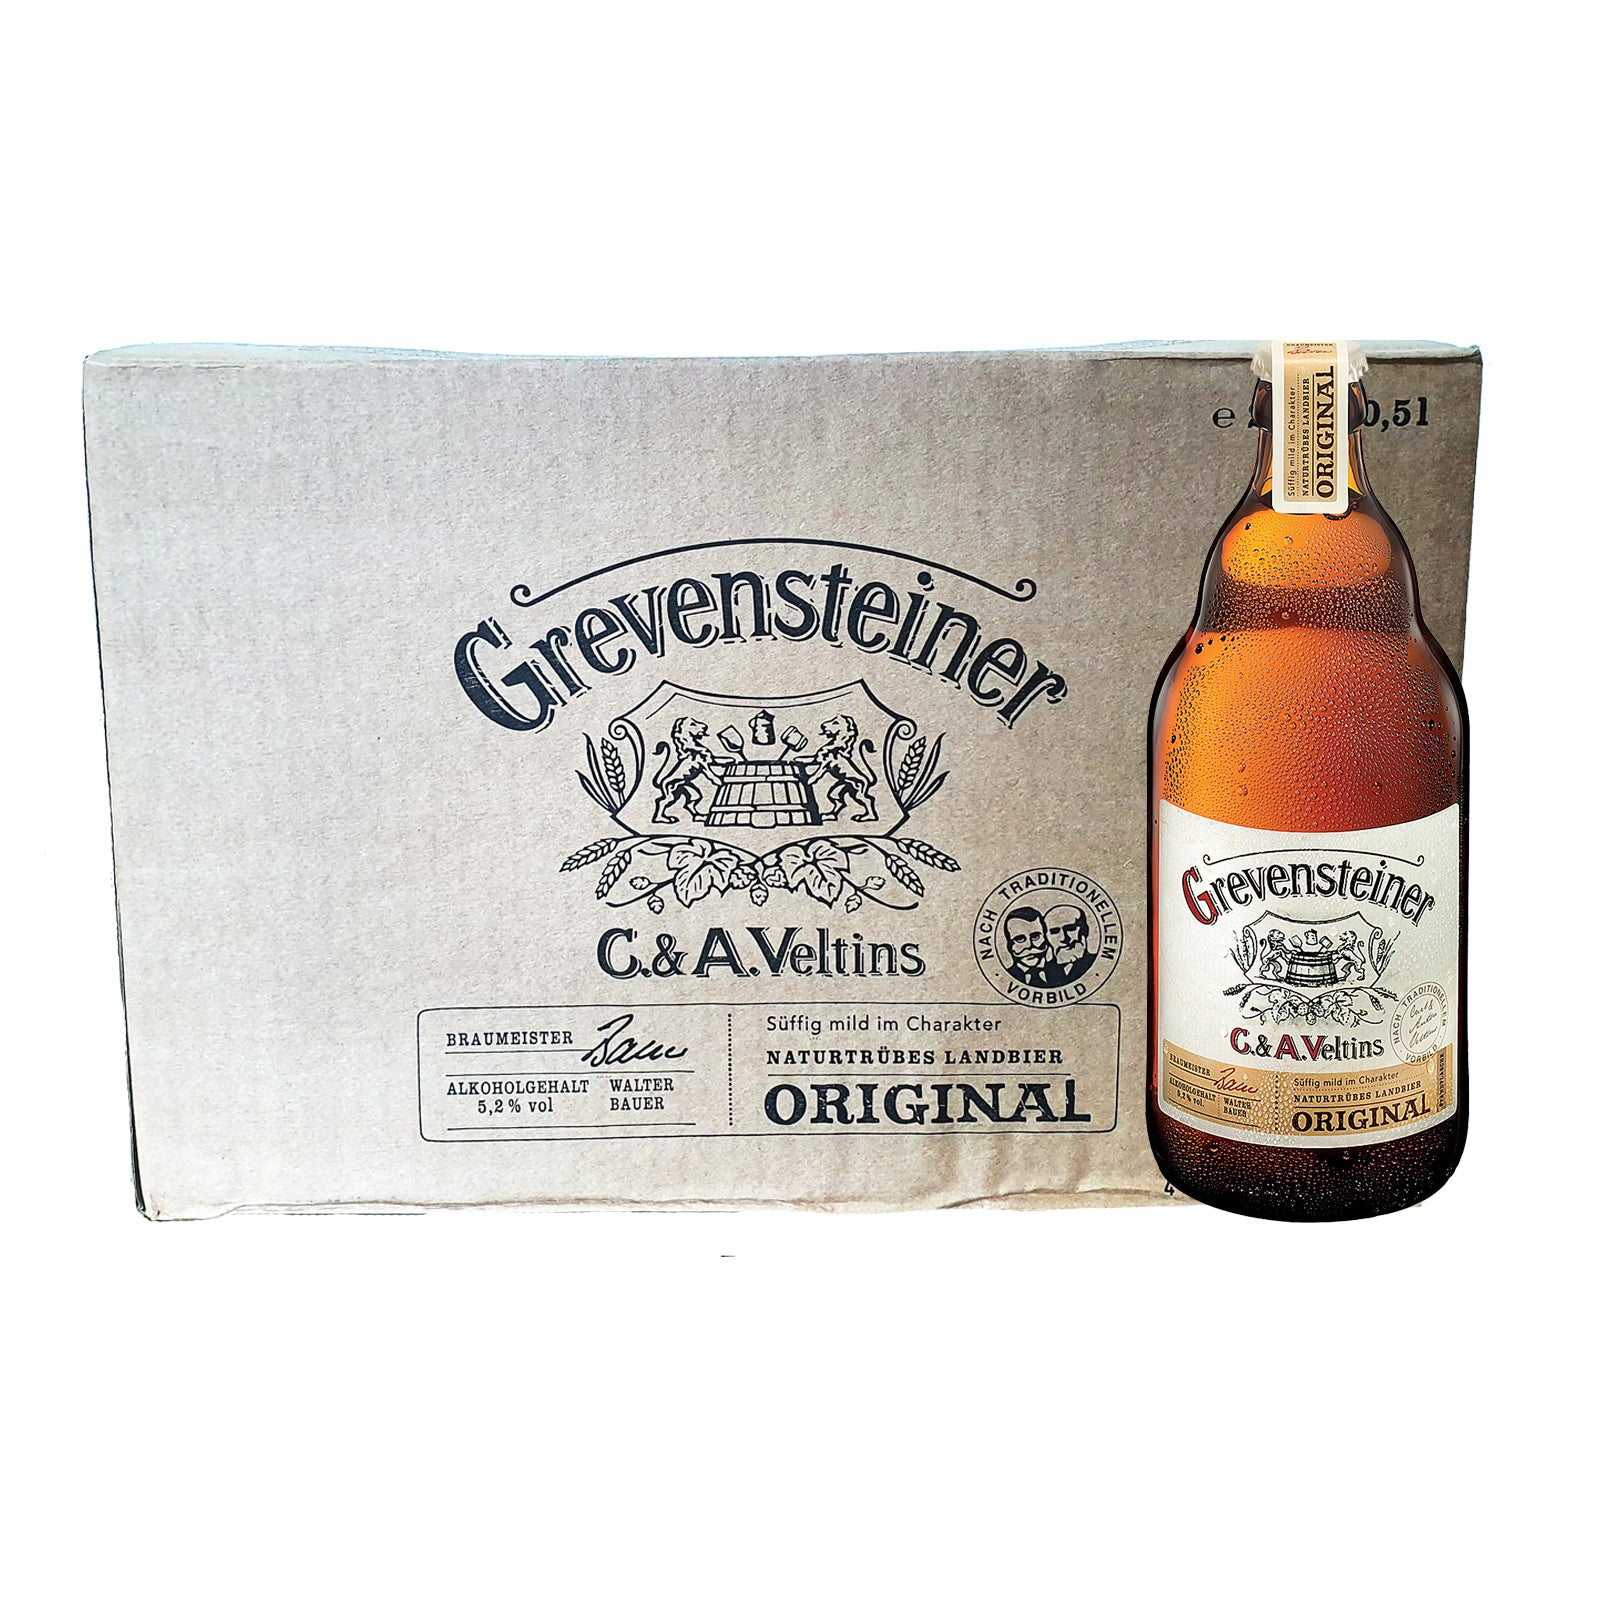 Grevensteiner Original 5.2% 16x 500ml bottles